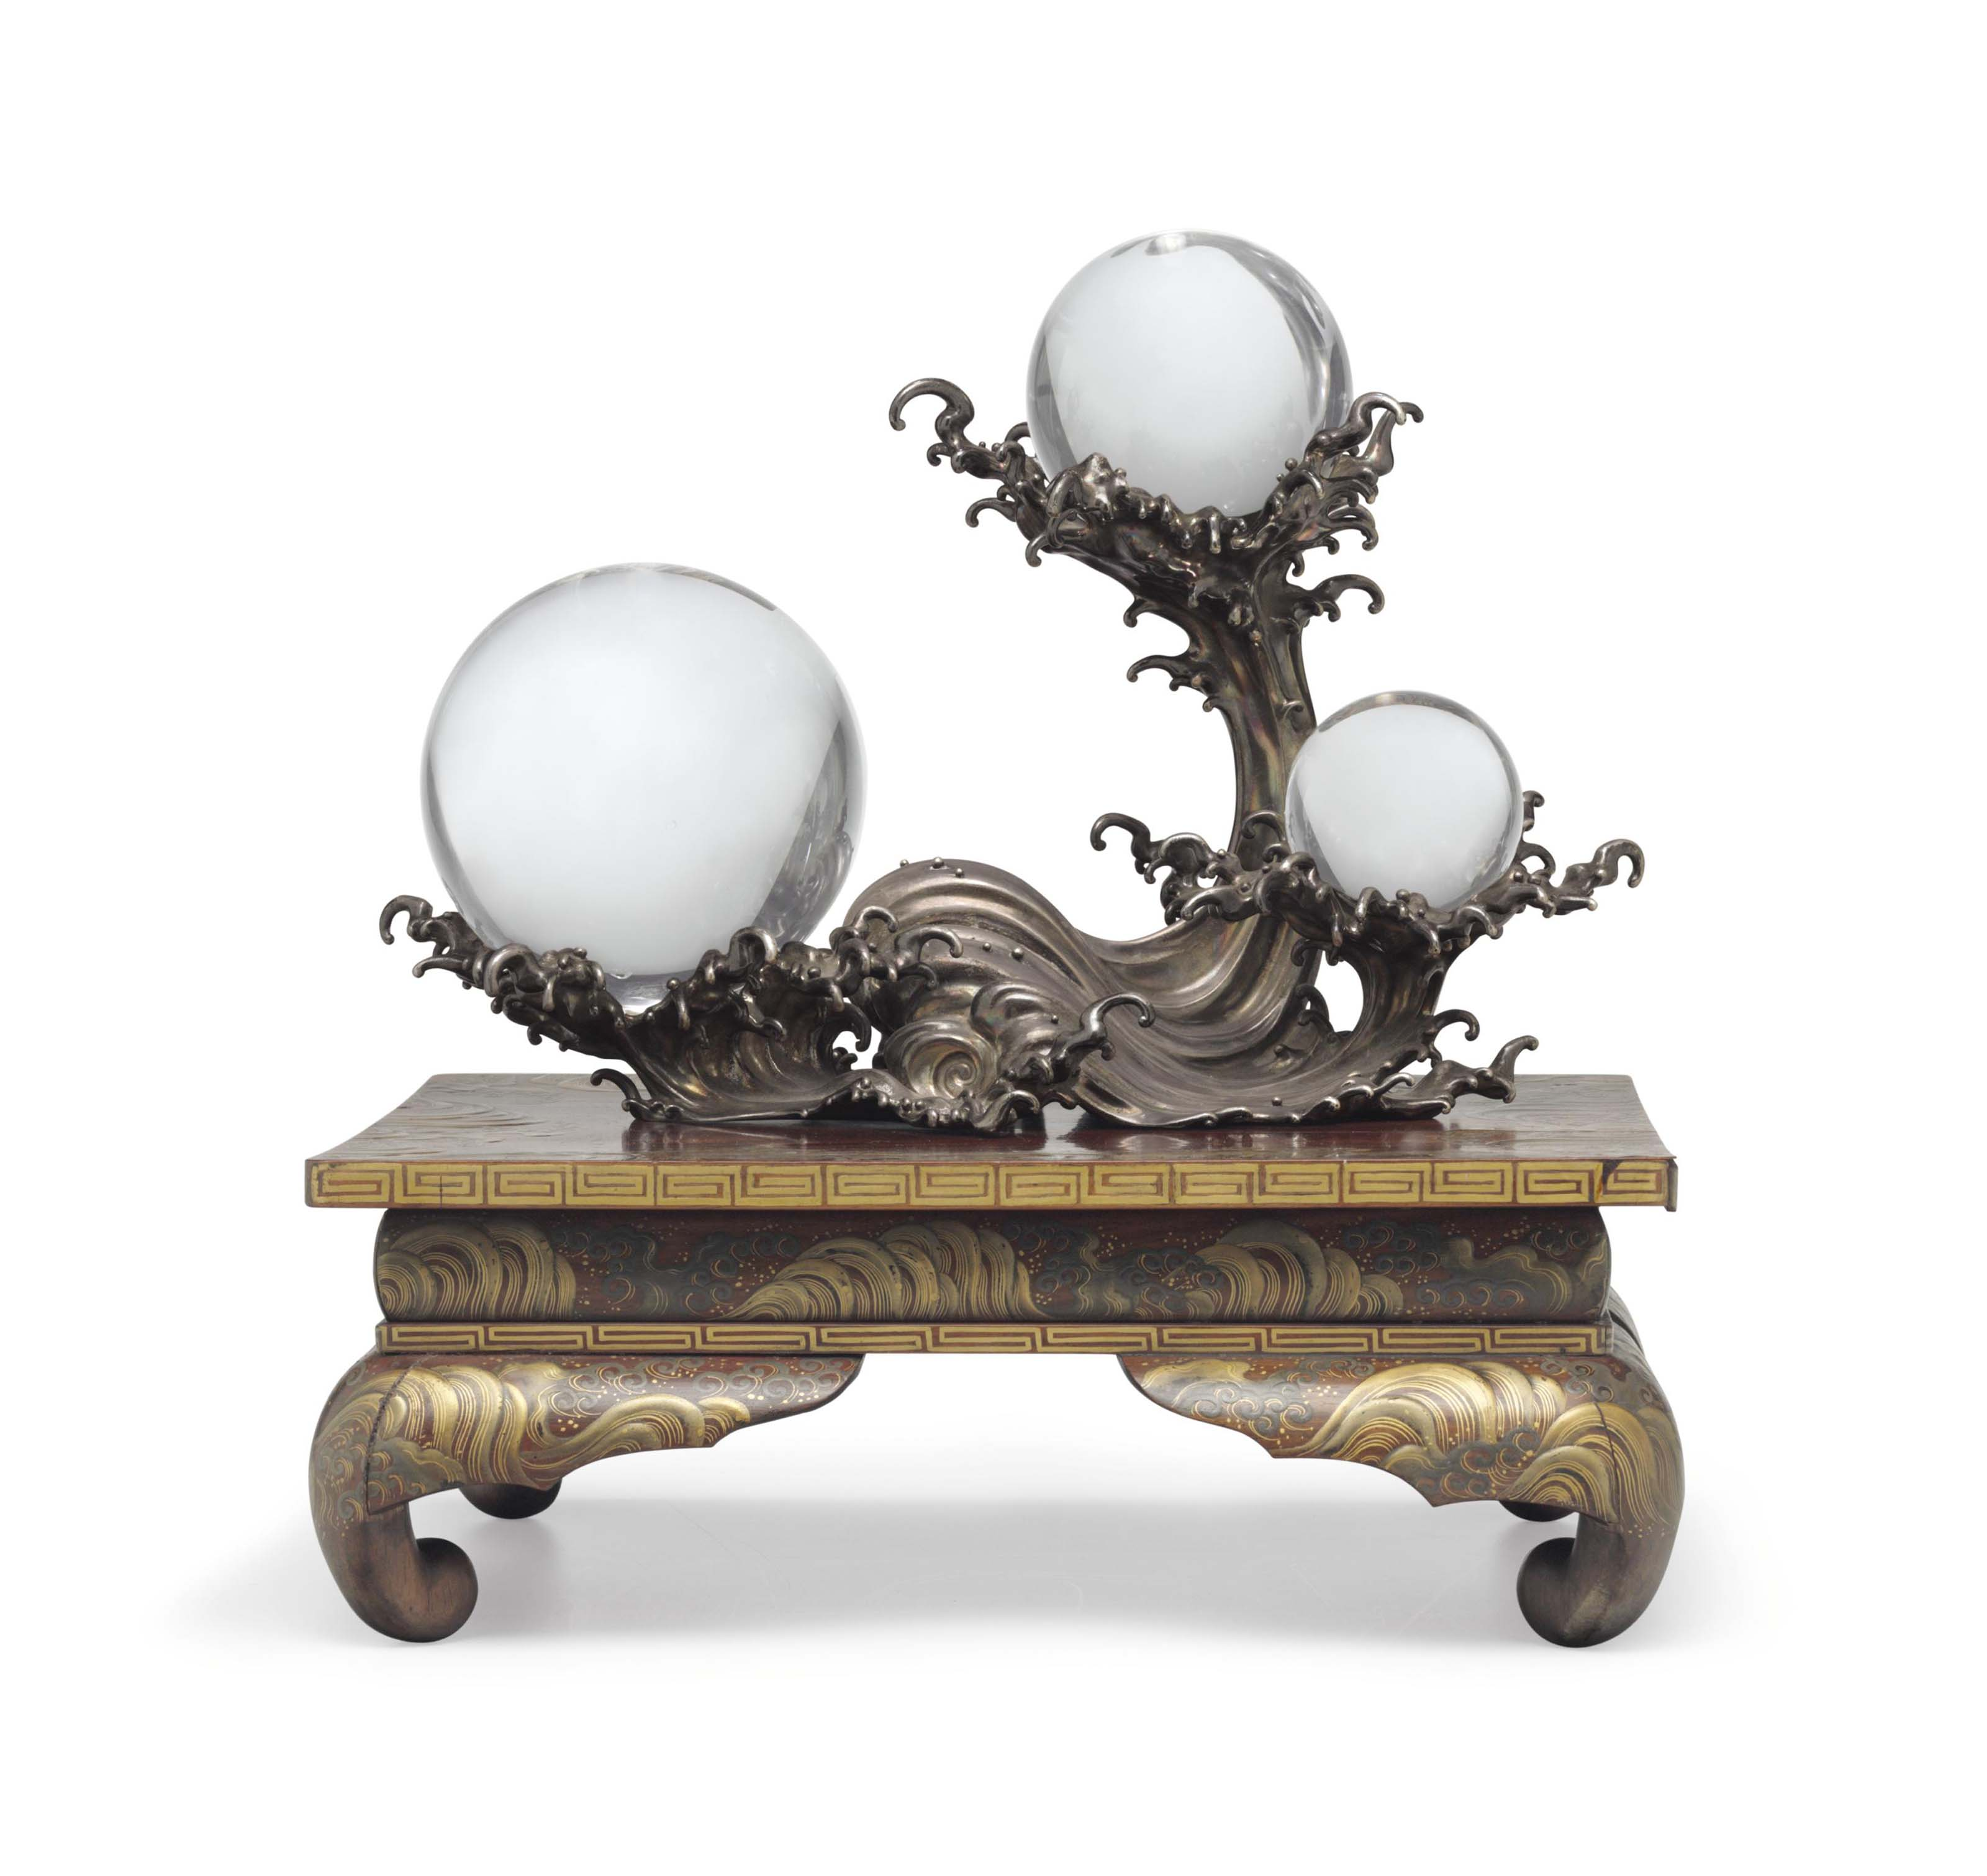 Three crystal spheres on a silver stand